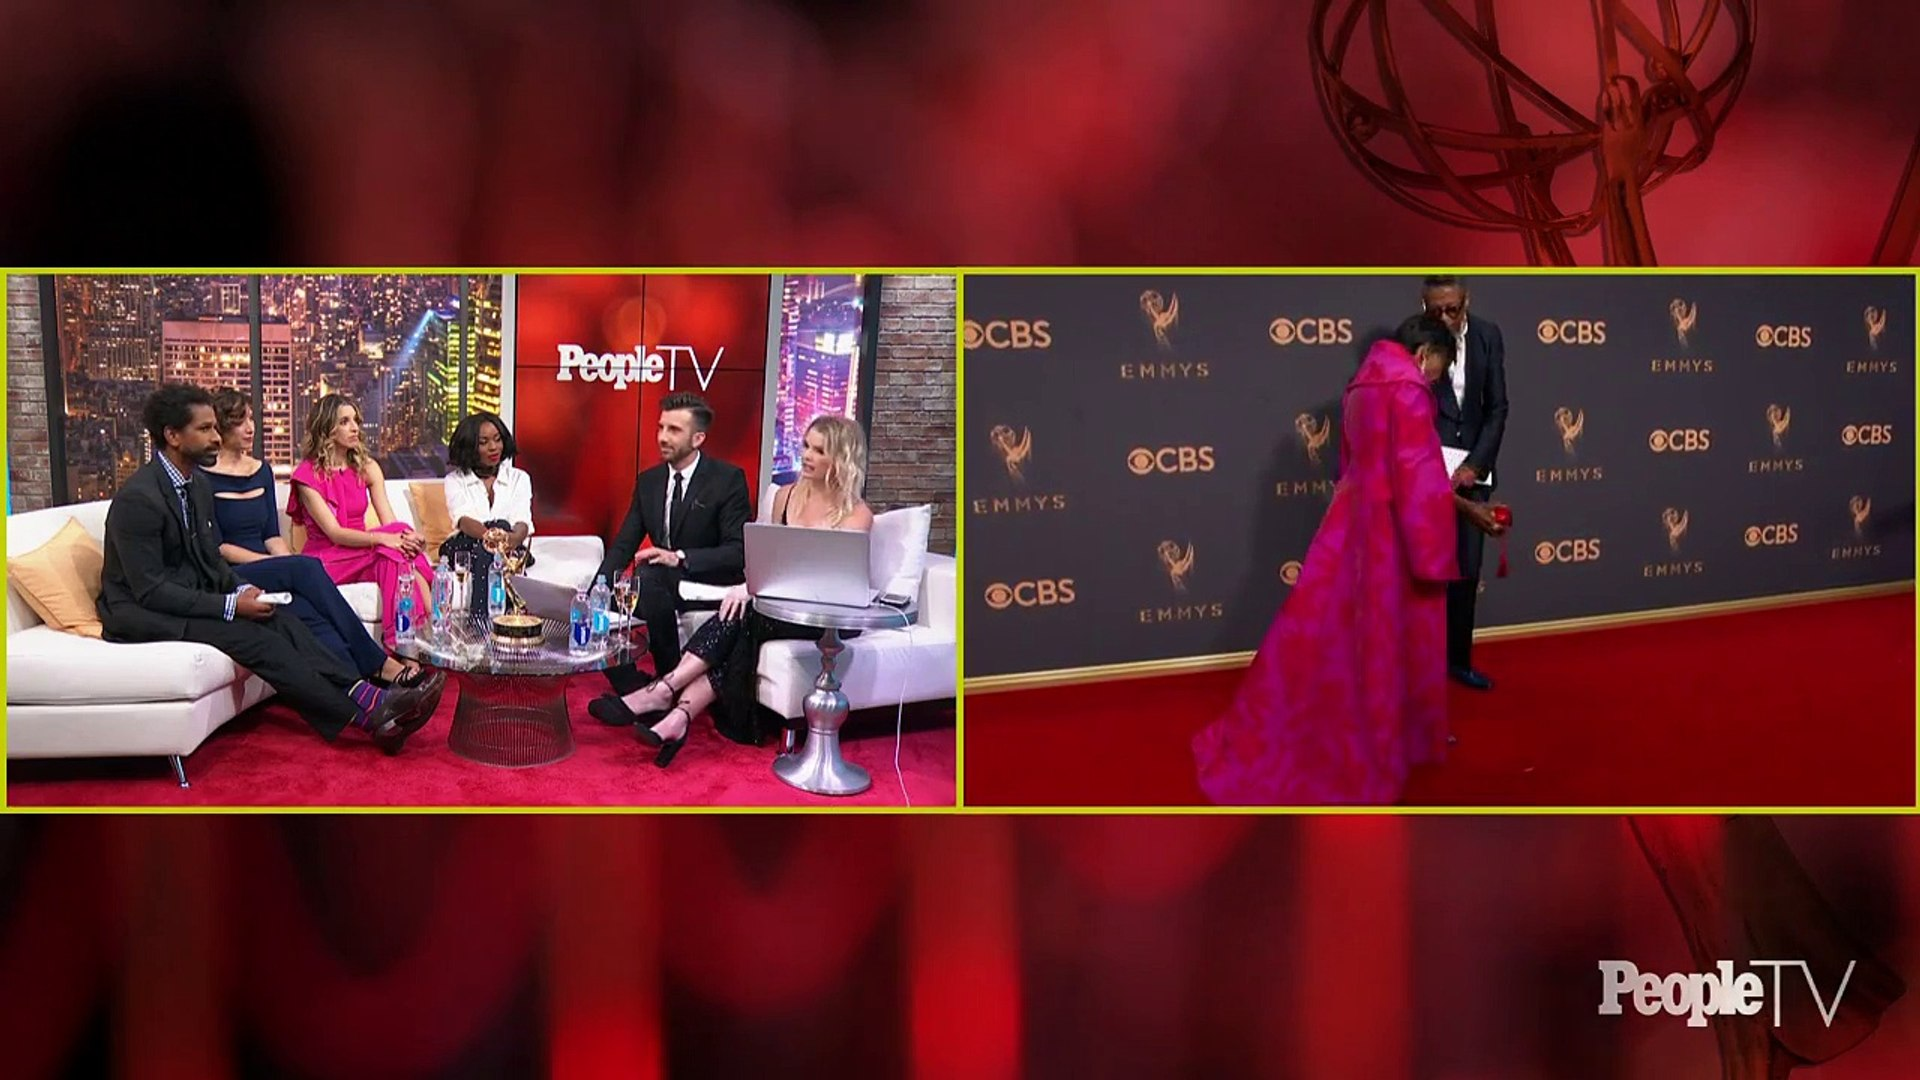 Emmys 2017 Red Carpet Live By People & Entertainment Weekly | PeopleTV | Entertainment Weekly pa